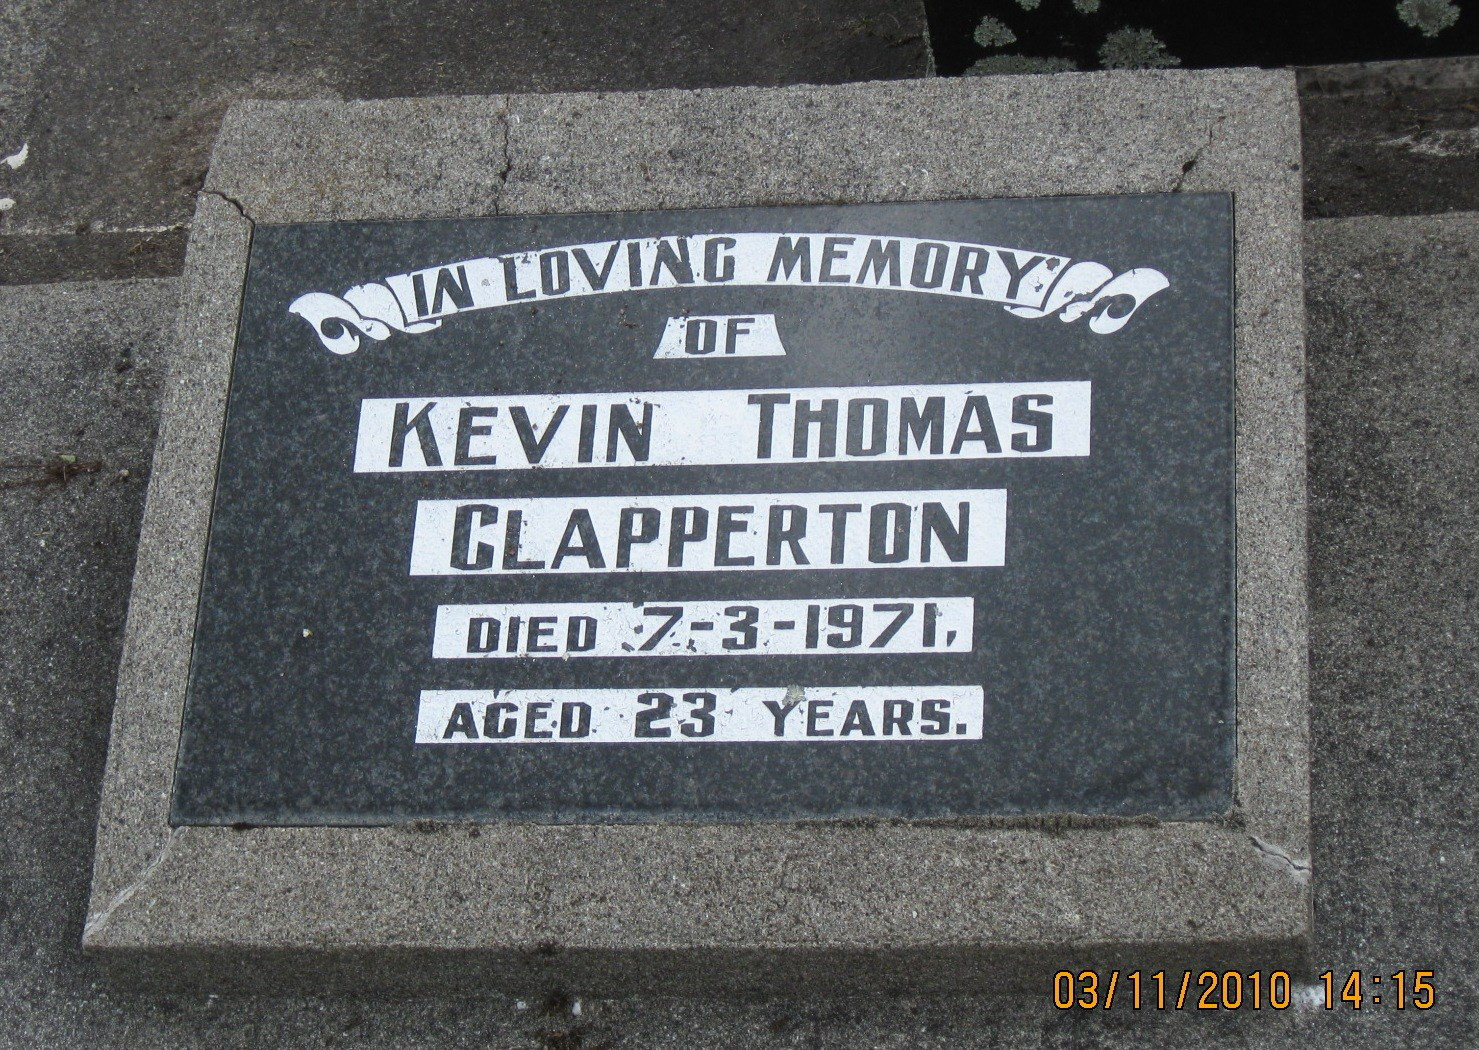 Thomas Clapperton